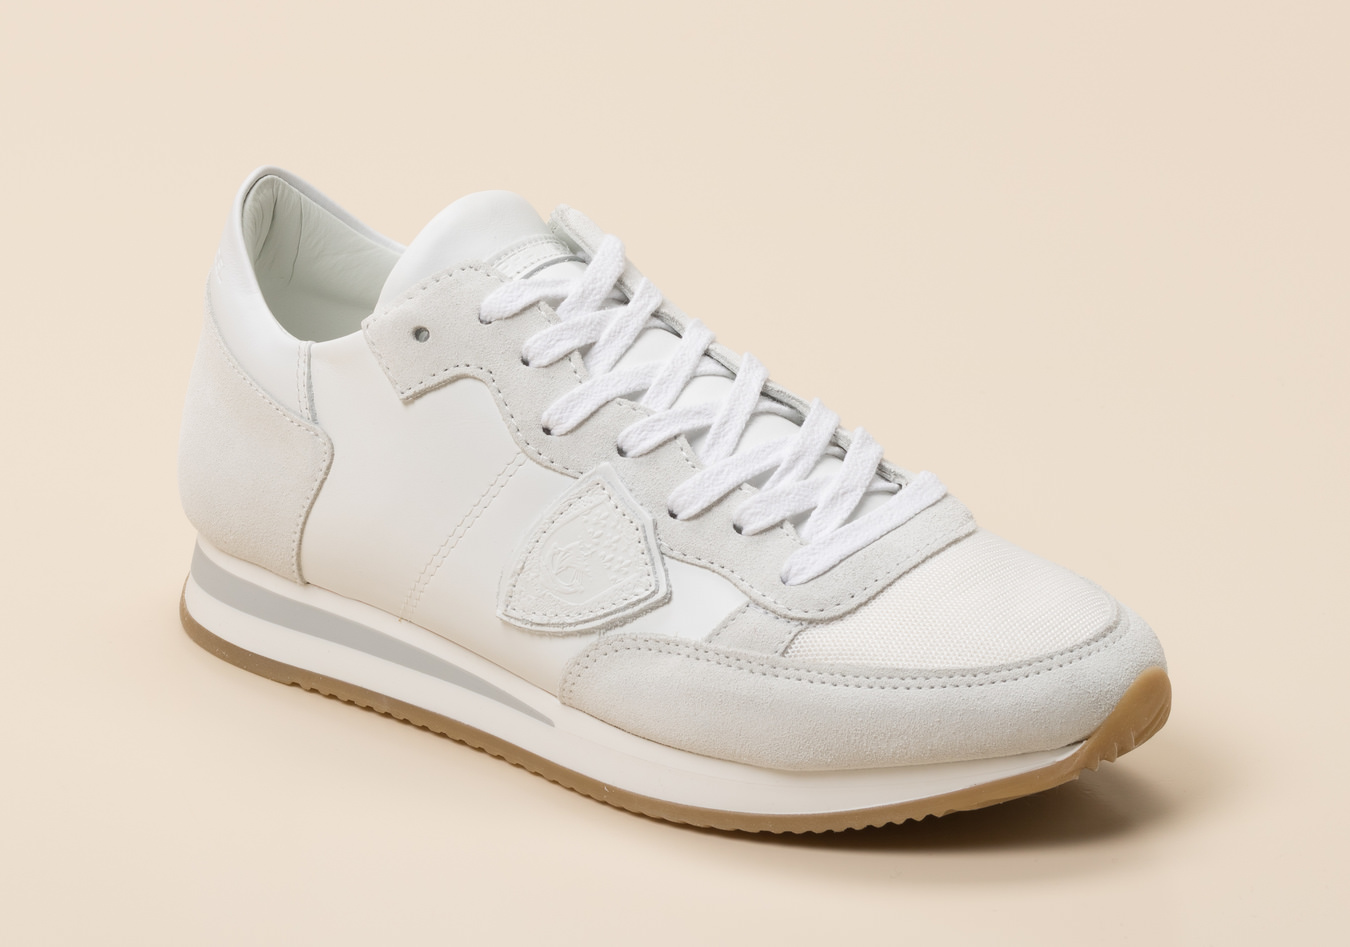 cheap for discount ced21 9d7d3 Philippe Model Paris Damen Sneaker in weiß kaufen | Zumnorde Online-Shop